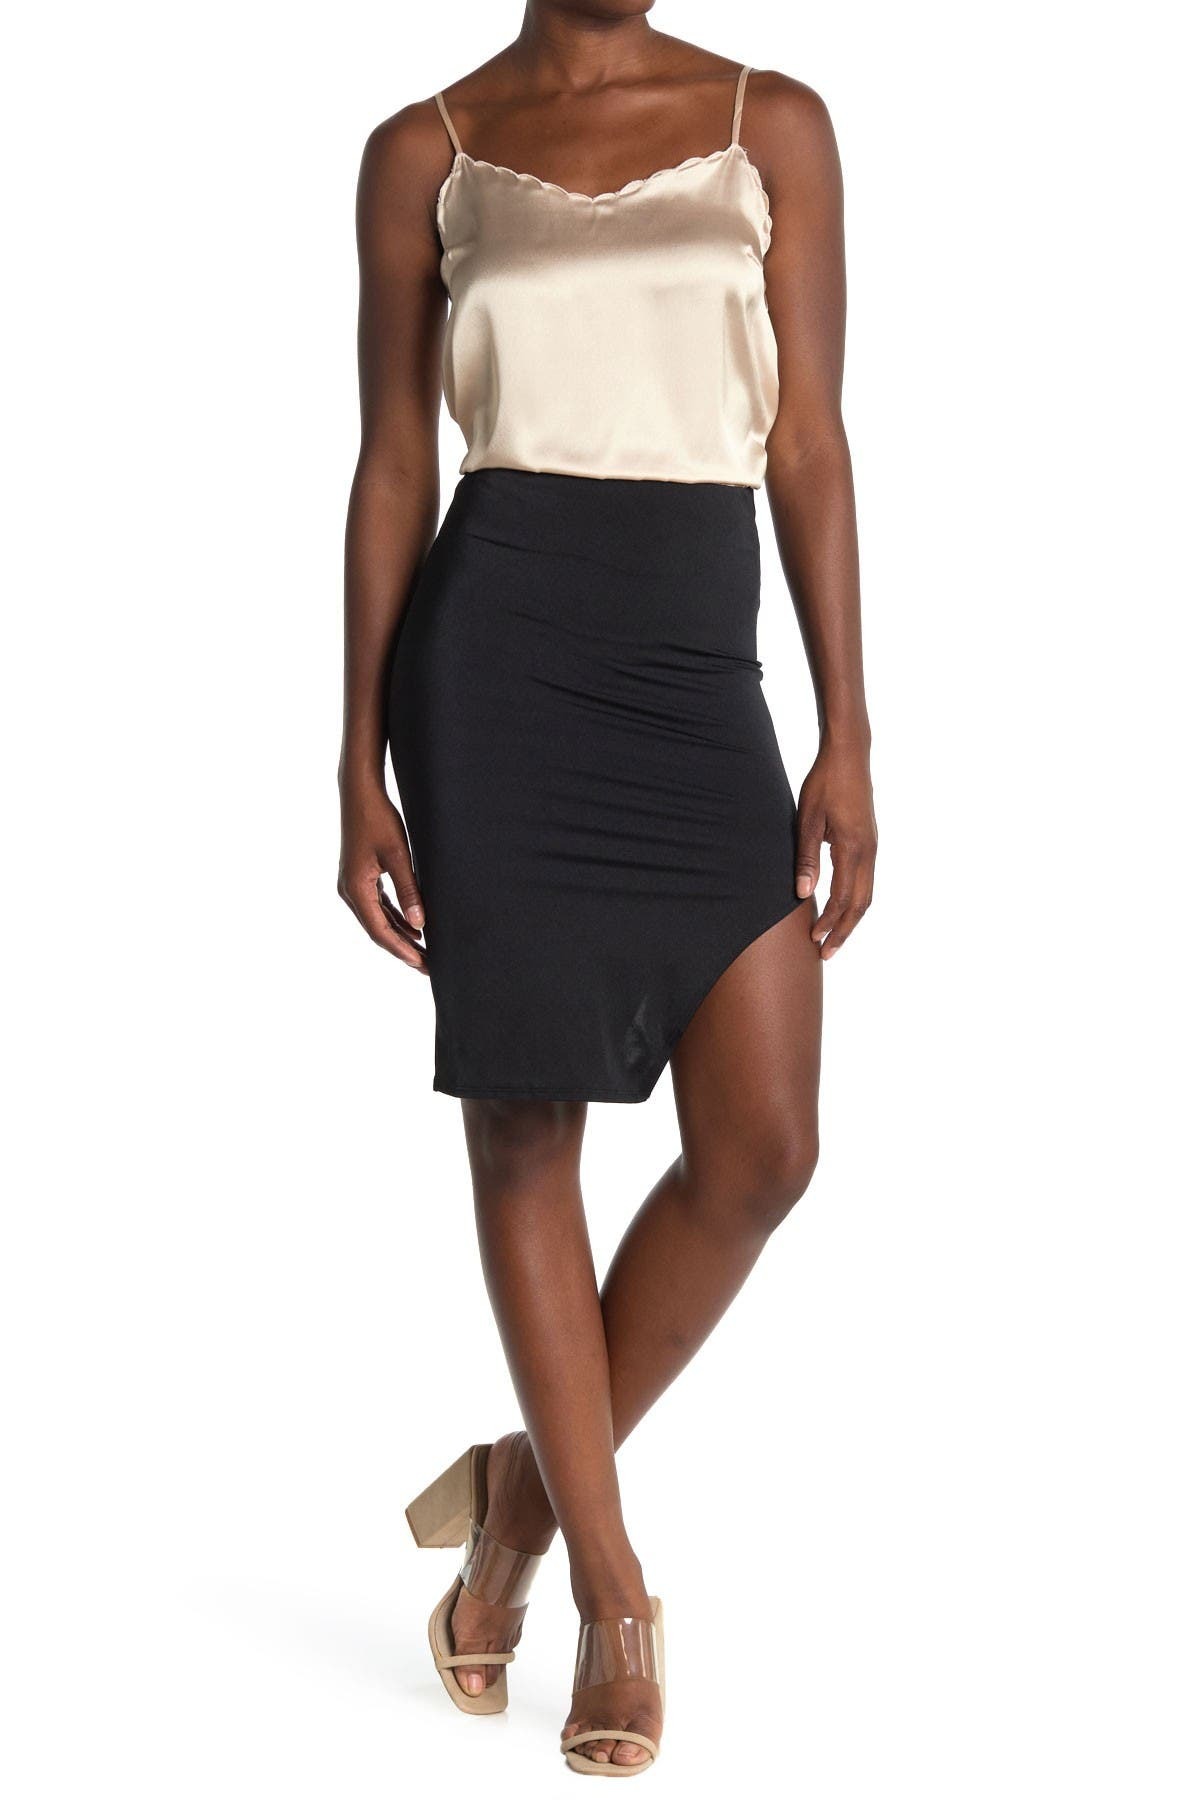 Image of Know One Cares Woven Bodycon Skirt